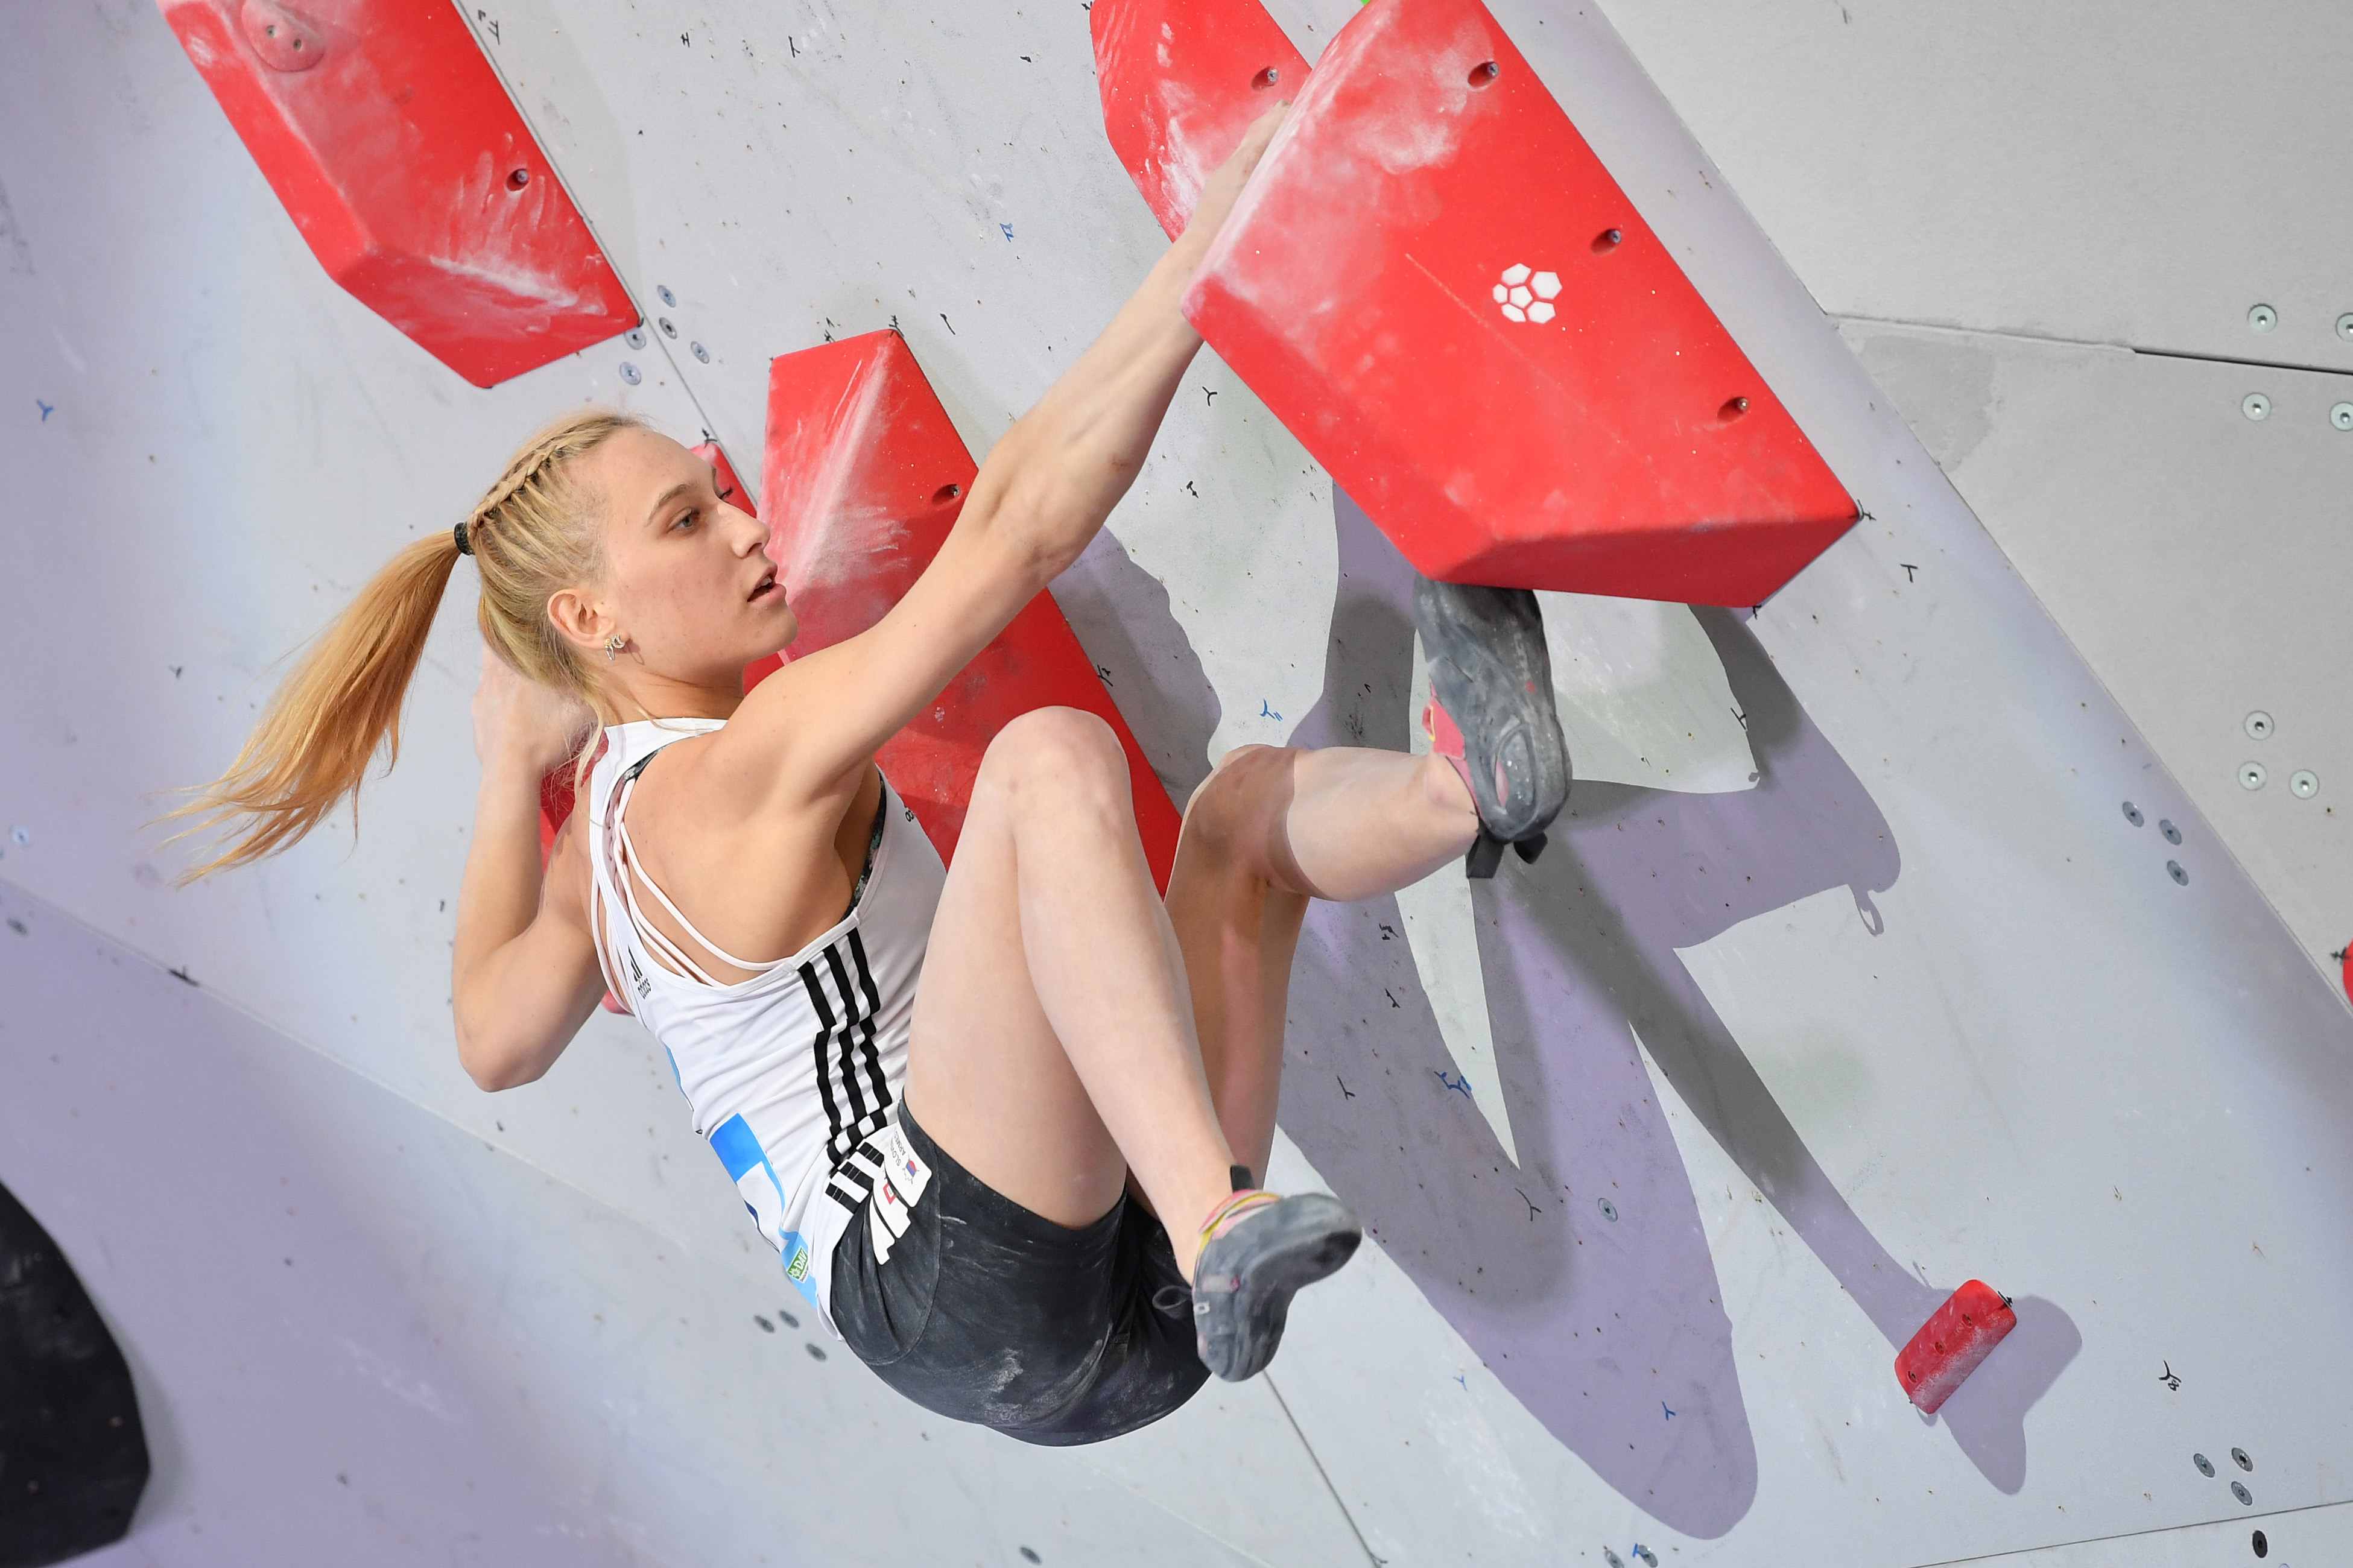 Janja Garnbret of Slovenia competes during the International Federation of Sports Climing (IFSC) World Cup at Olympiastadion on May 19, 2019 in Munich, Germany.